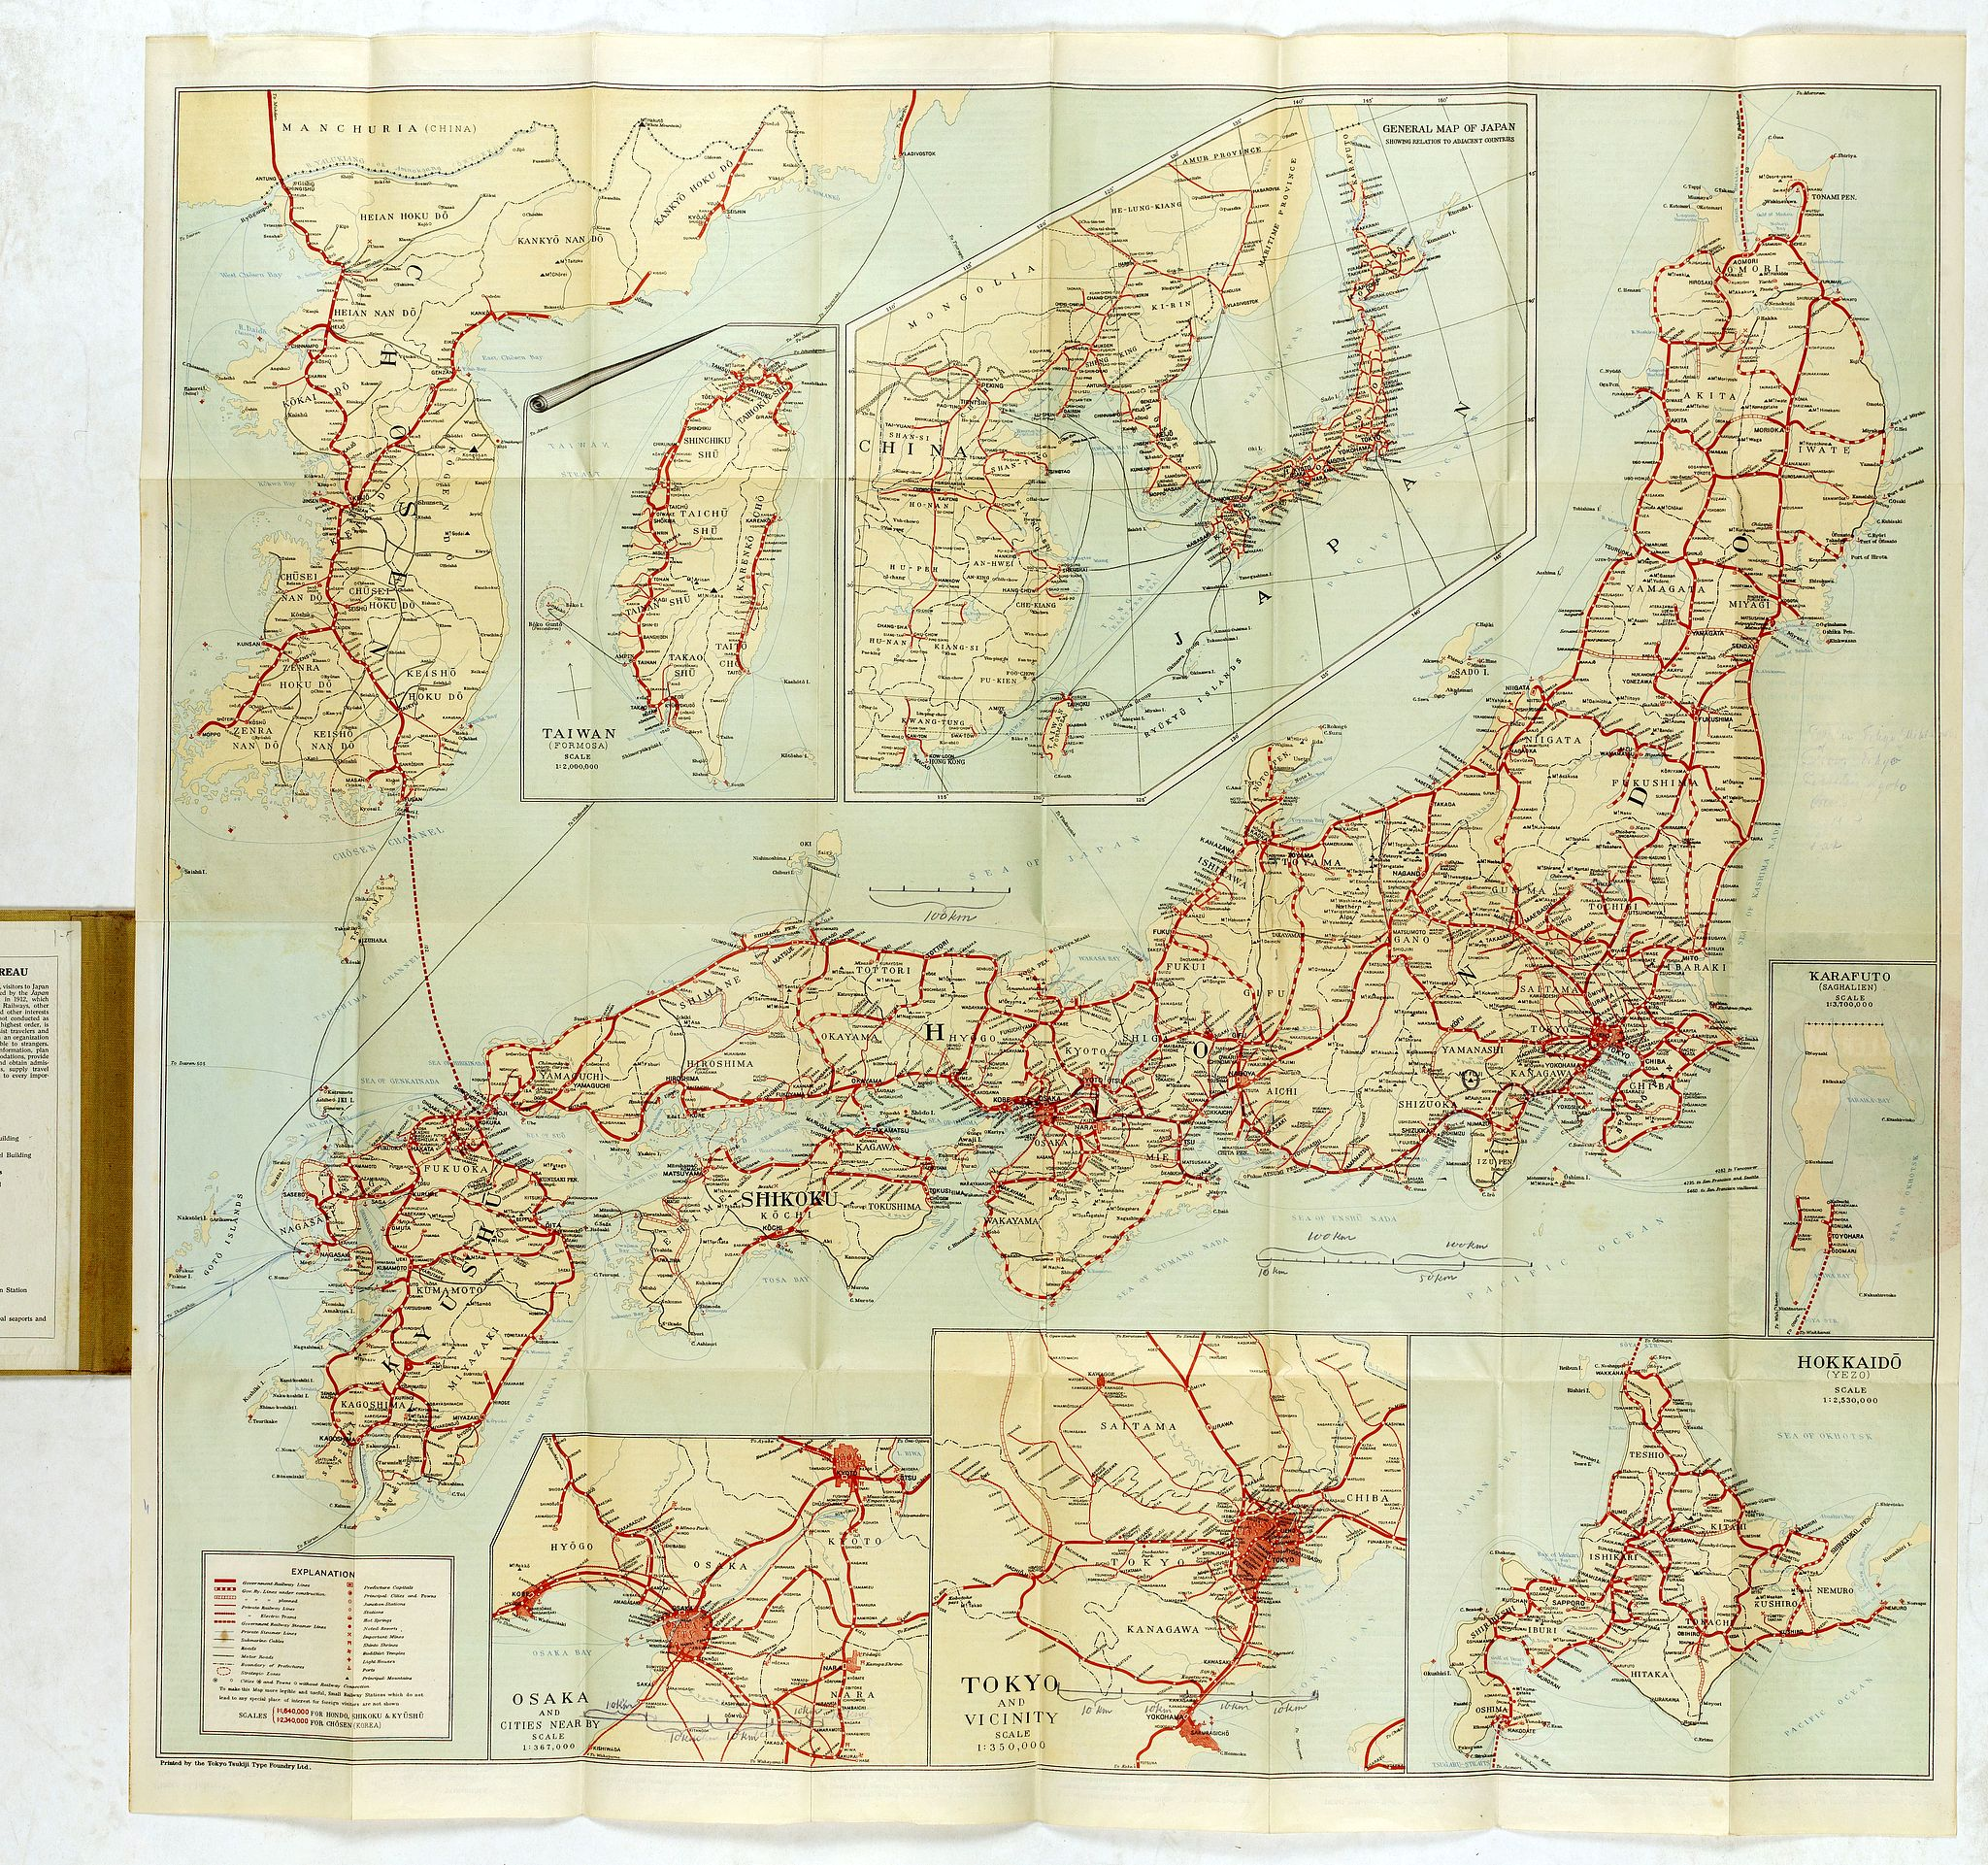 JAPANESE GOVERNMENT RAILWAYS. -  Travellers' Map of Japan, Chosen (Korea), Taiwan (Formosa) with Brief Descriptions of the Principal Tourist Points of Japan.